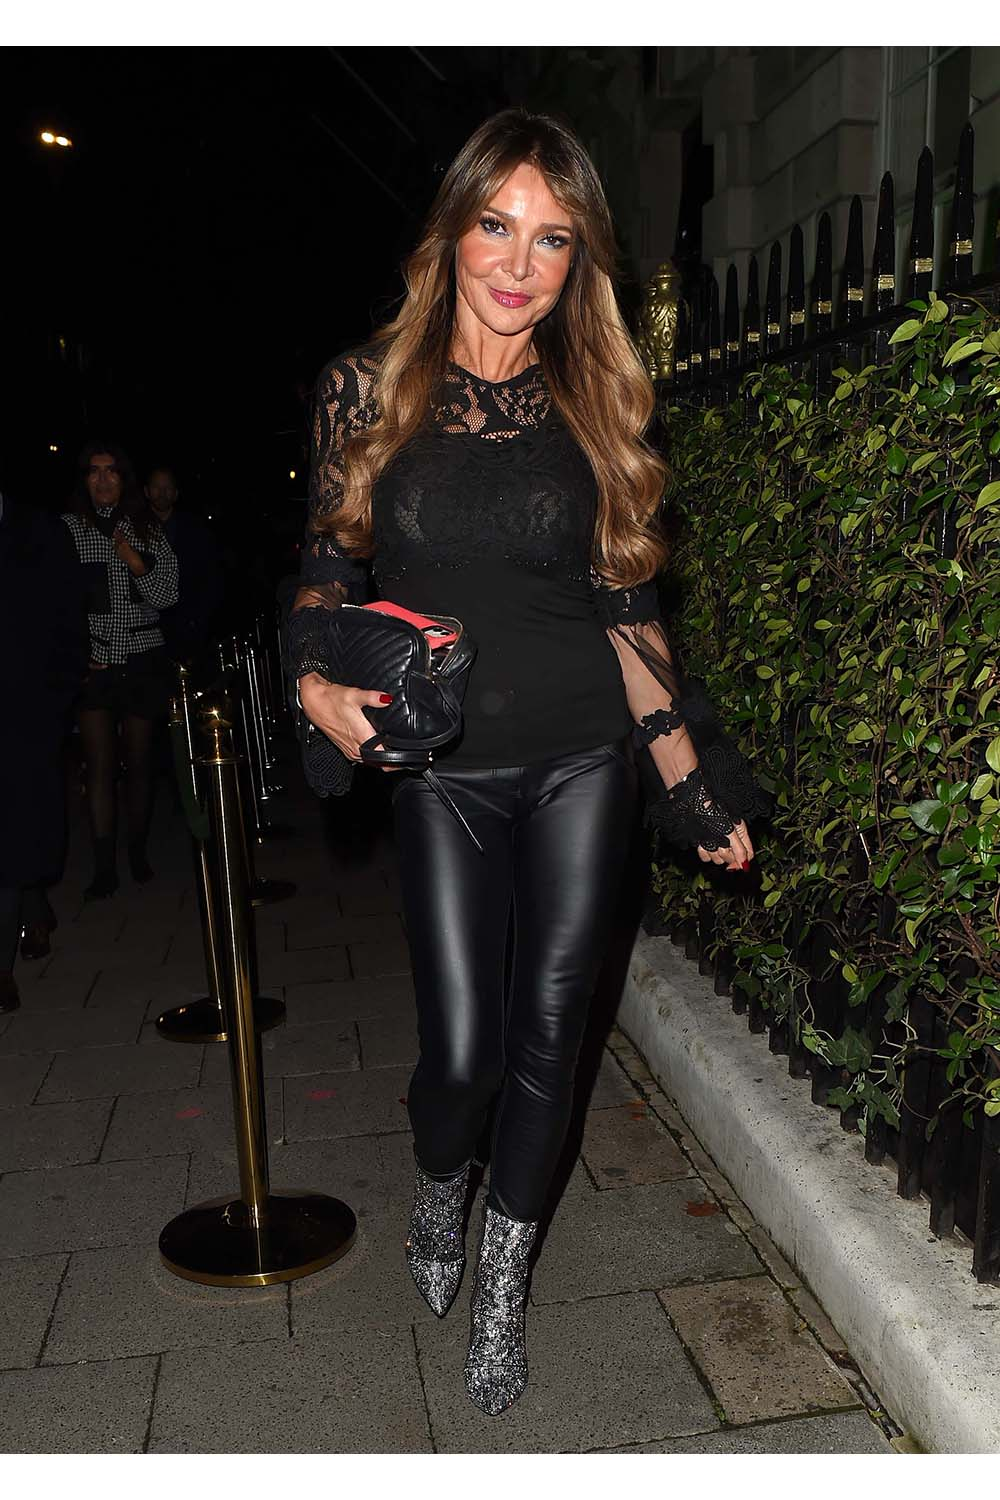 Lizzie Cundy seen at Annabel's Member's Club in Mayfair, London